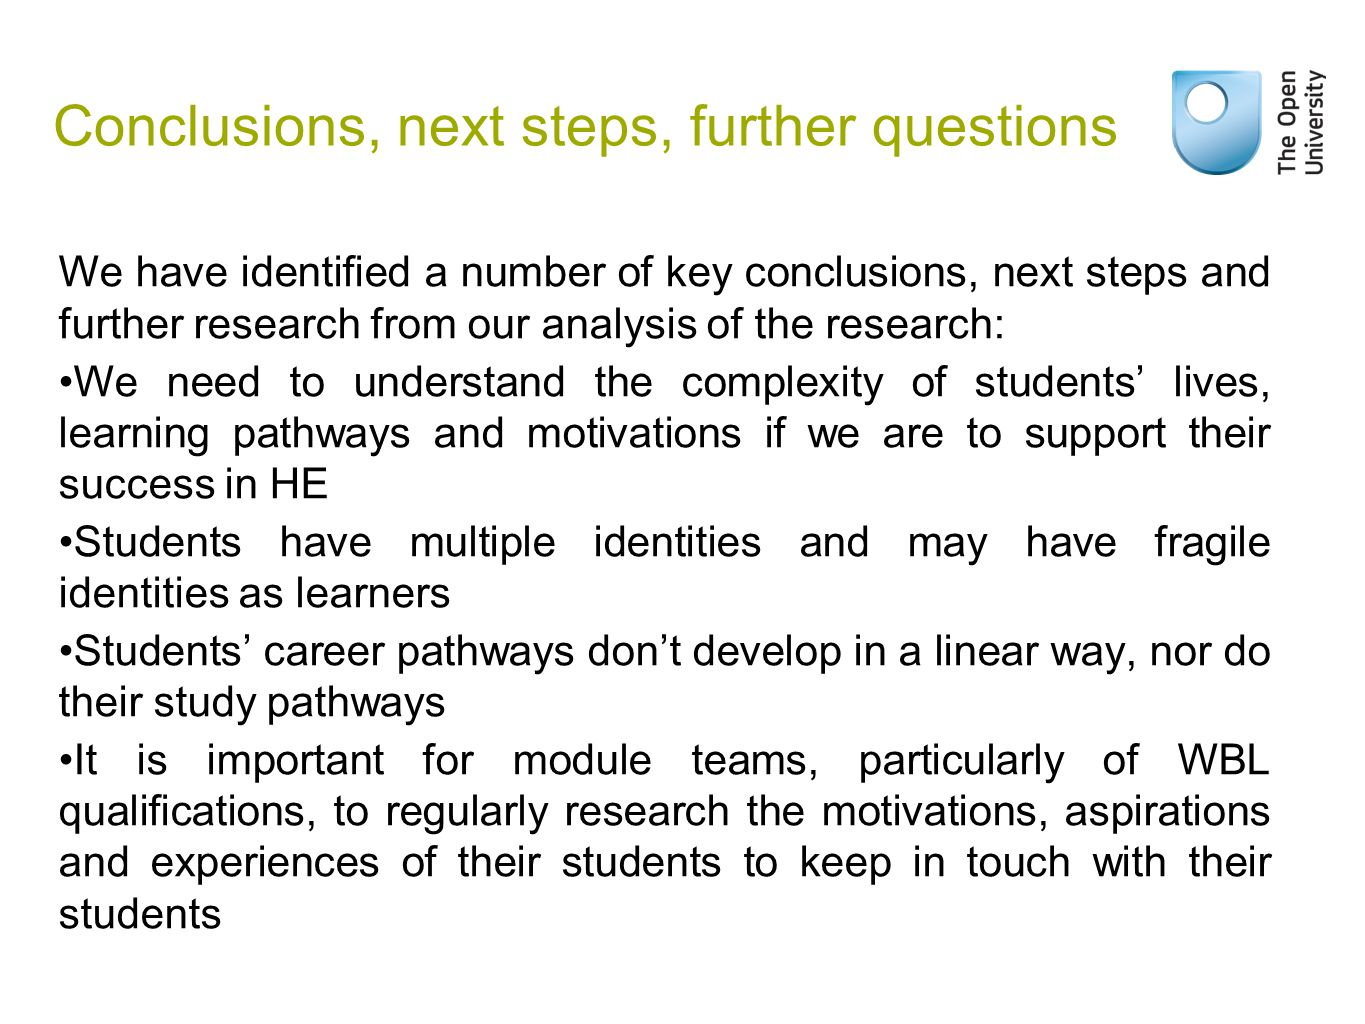 Conclusions, next steps, further questions We have identified a number of key conclusions, next steps and further research from our analysis of the research: We need to understand the complexity of students' lives, learning pathways and motivations if we are to support their success in HE Students have multiple identities and may have fragile identities as learners Students' career pathways don't develop in a linear way, nor do their study pathways It is important for module teams, particularly of WBL qualifications, to regularly research the motivations, aspirations and experiences of their students to keep in touch with their students